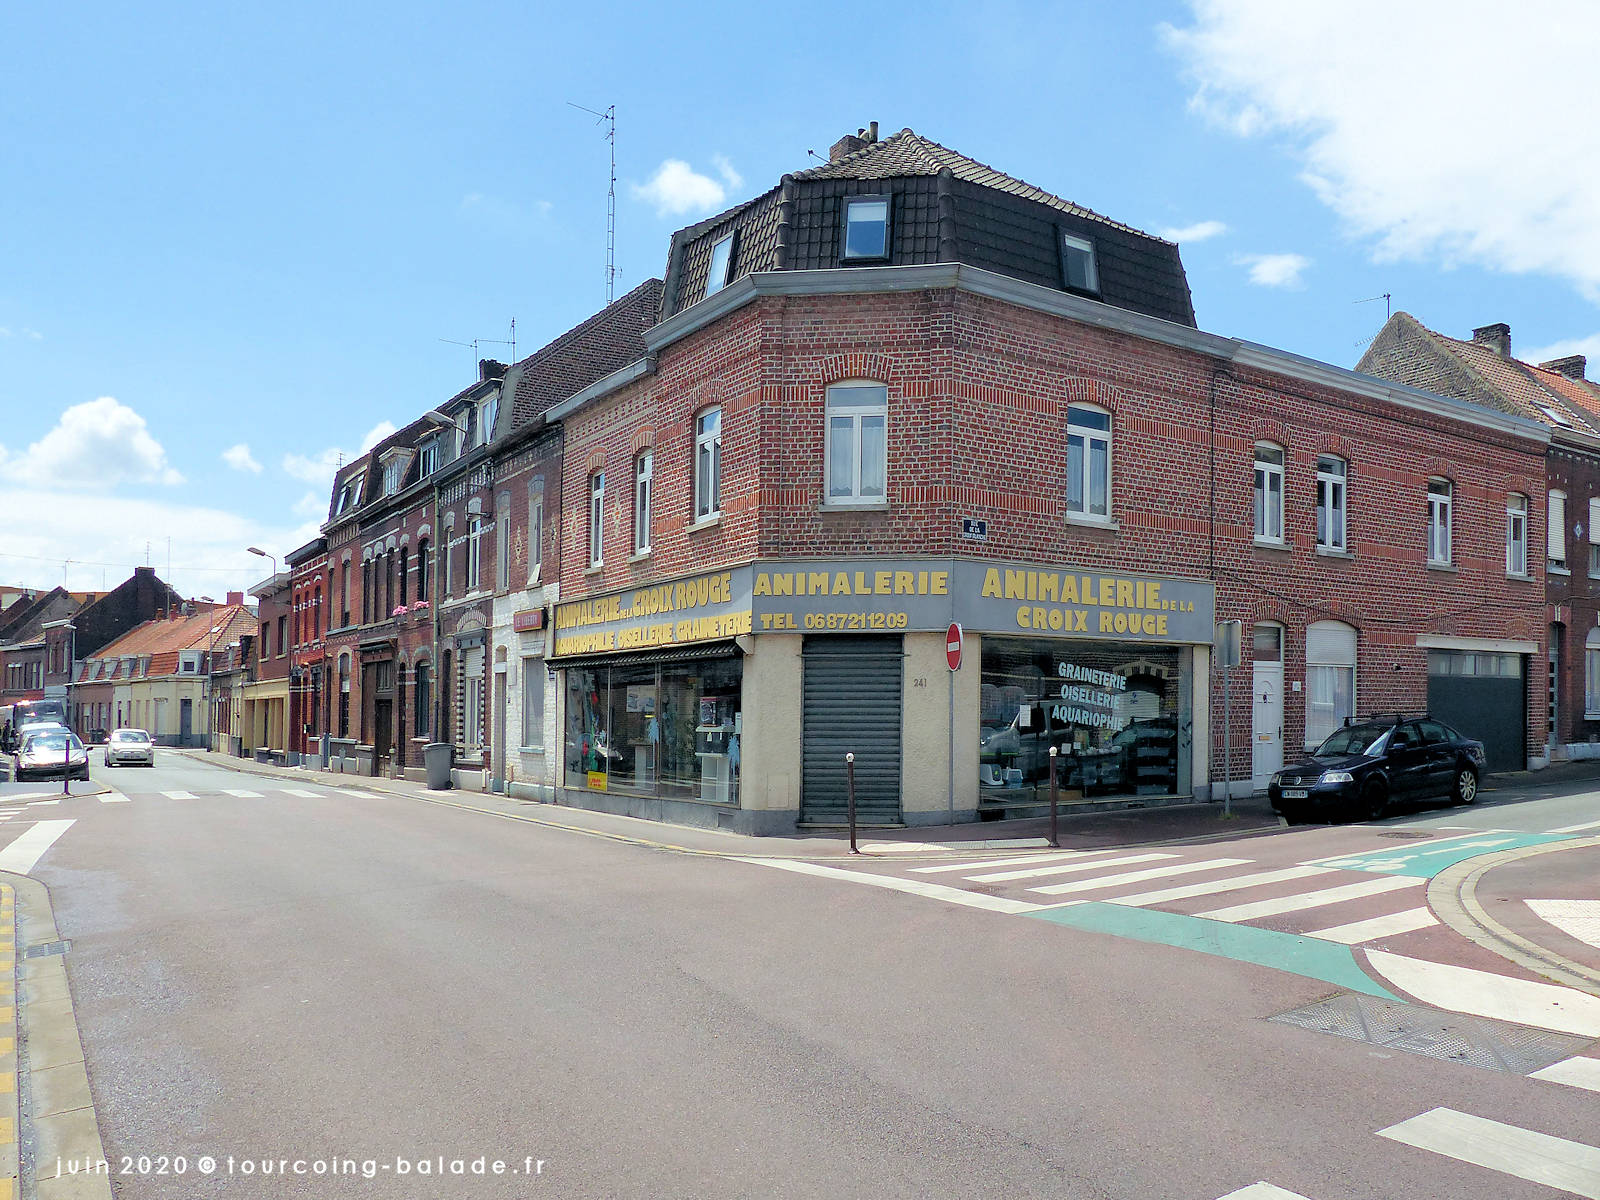 Angle rue Croix Rouge Croix Blanche, Tourcoing 2020